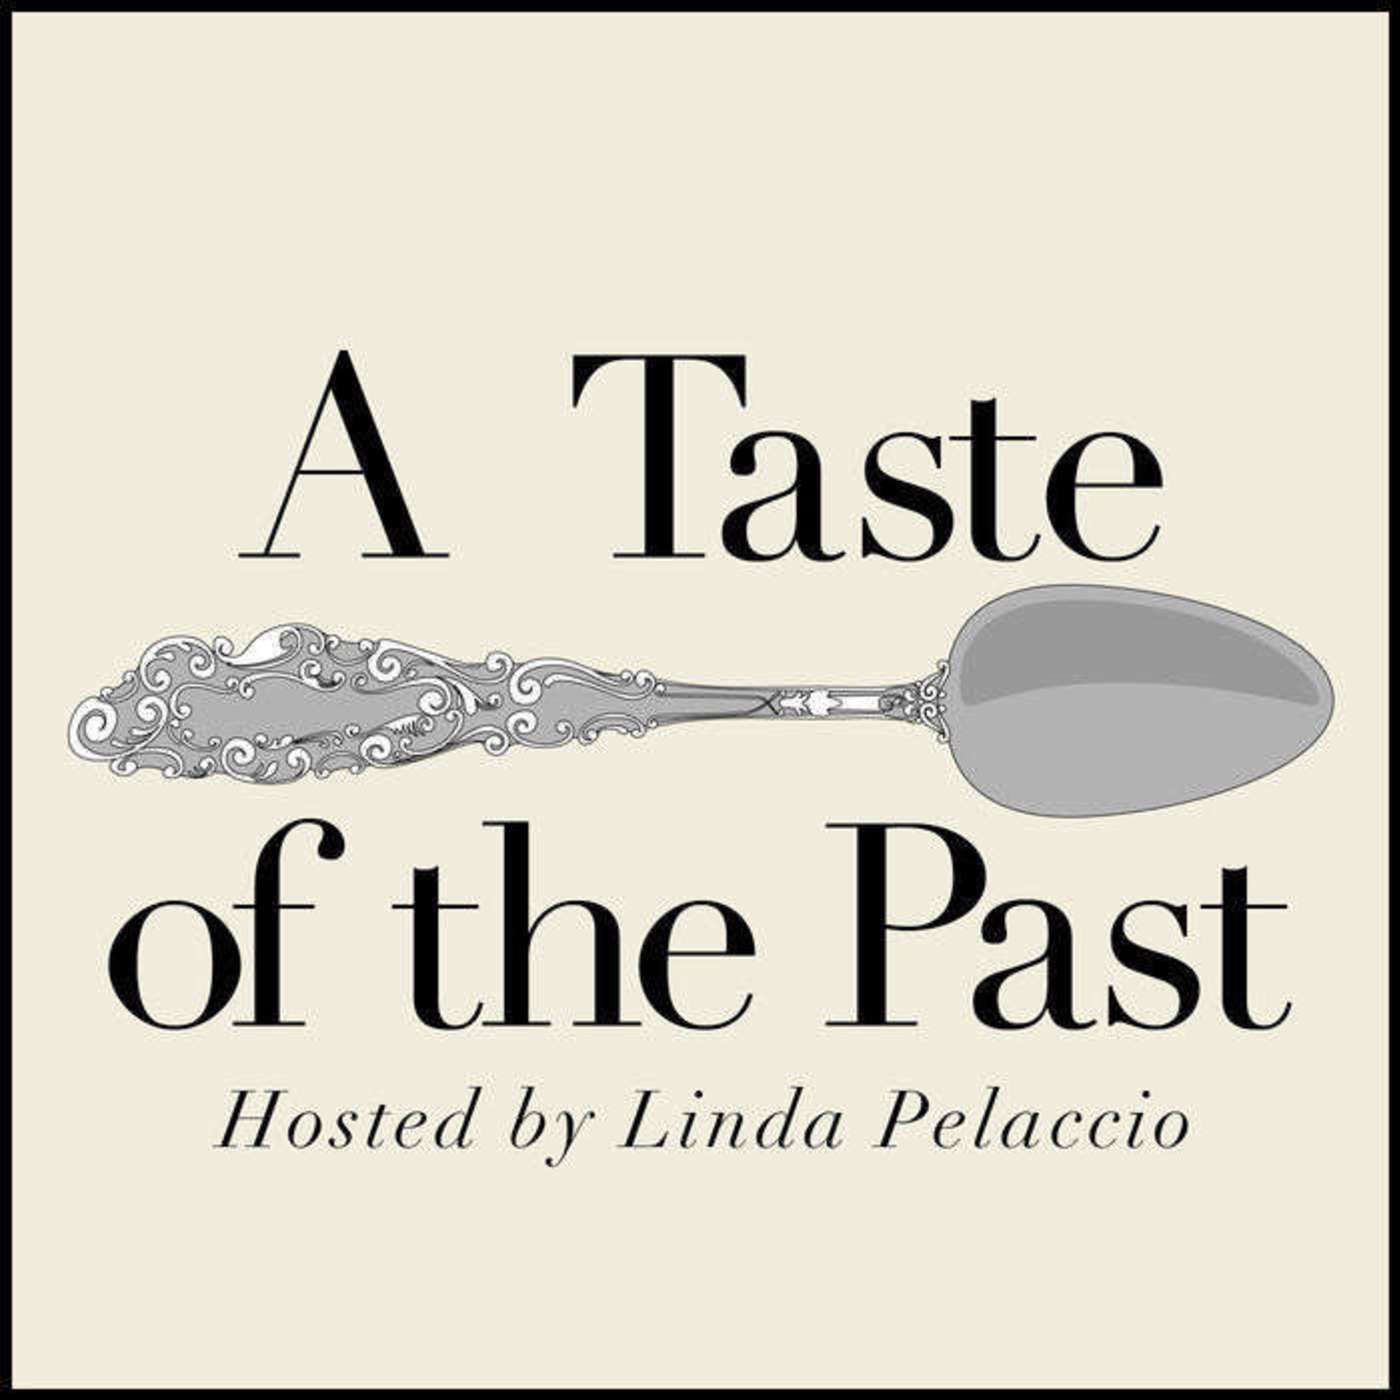 Episode 182: History of the Potato Chip